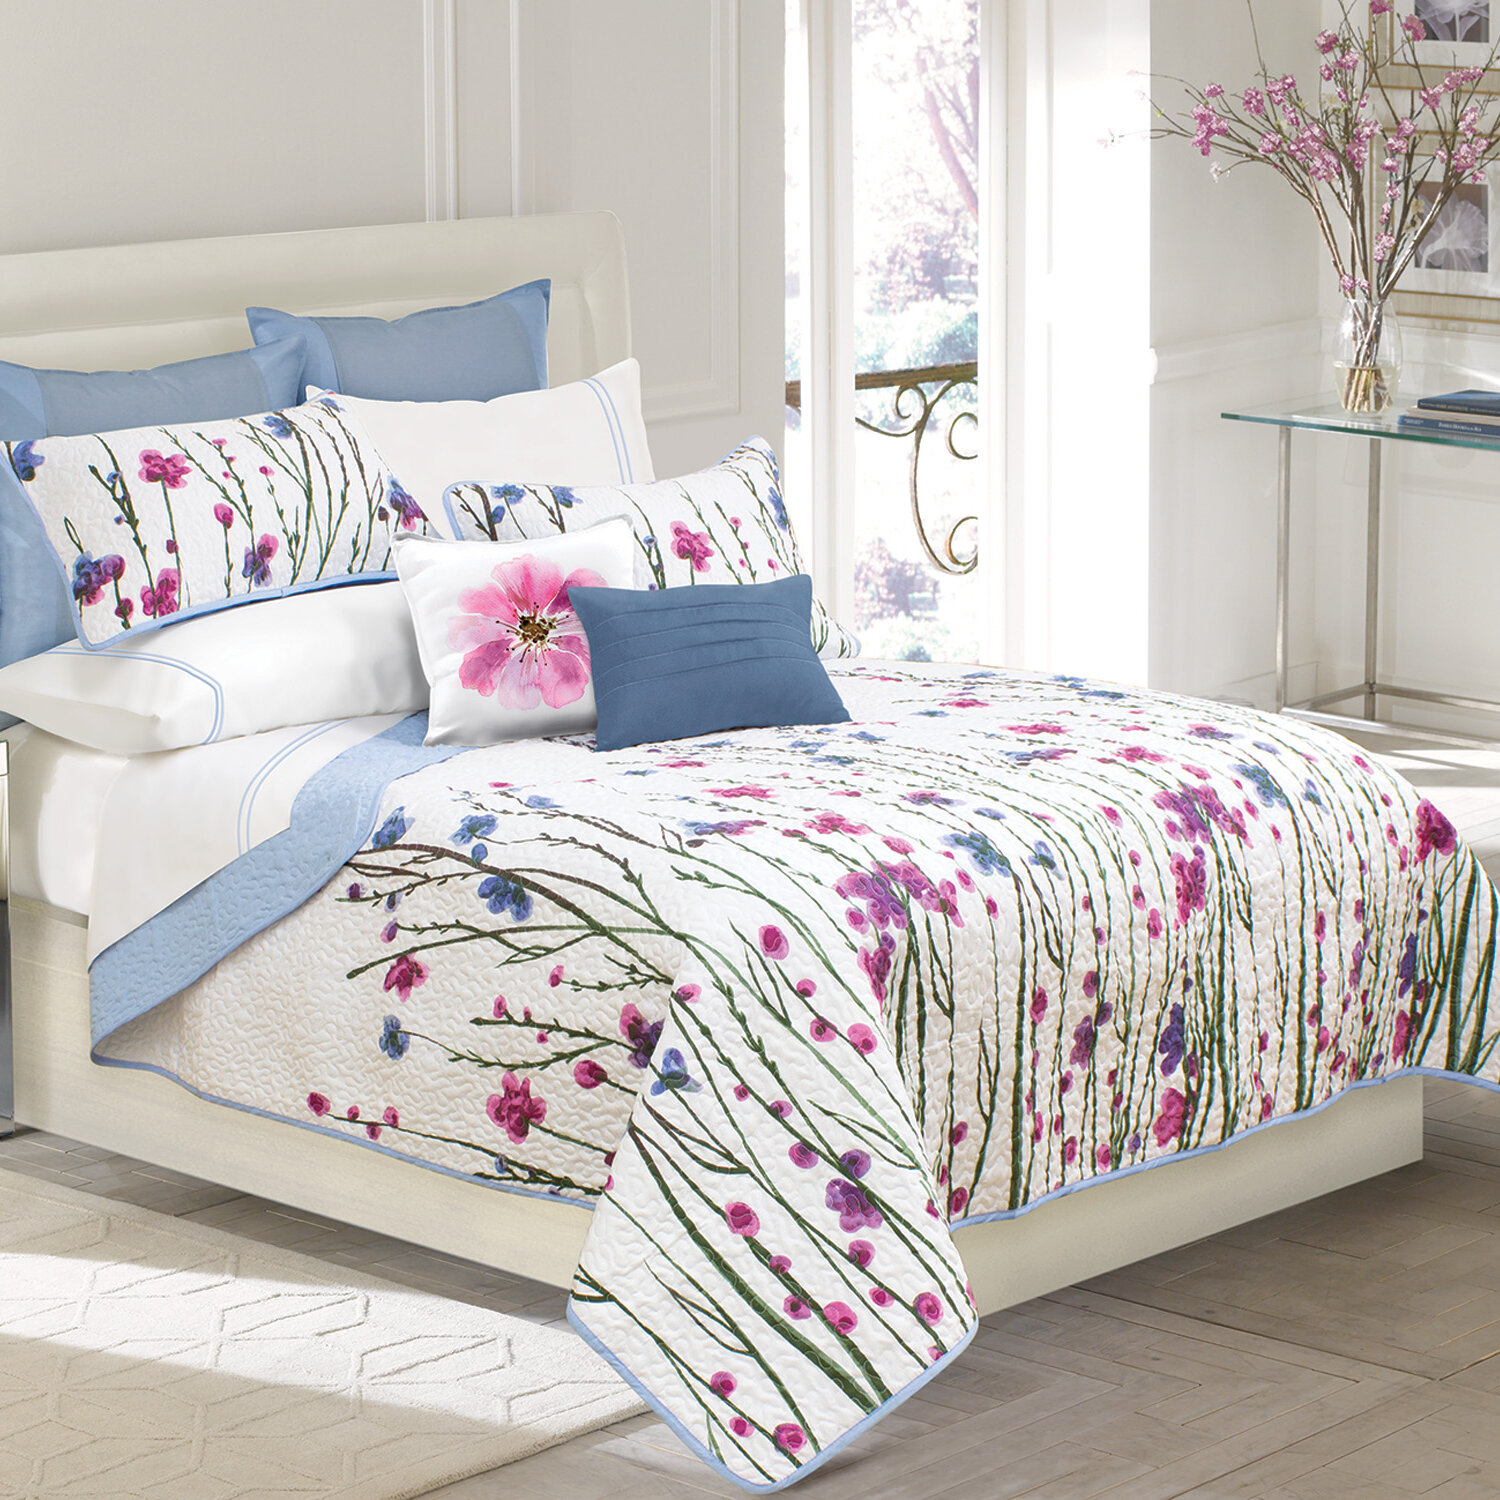 Wayfair Nature Floral Purple Bedding You Ll Love In 2021